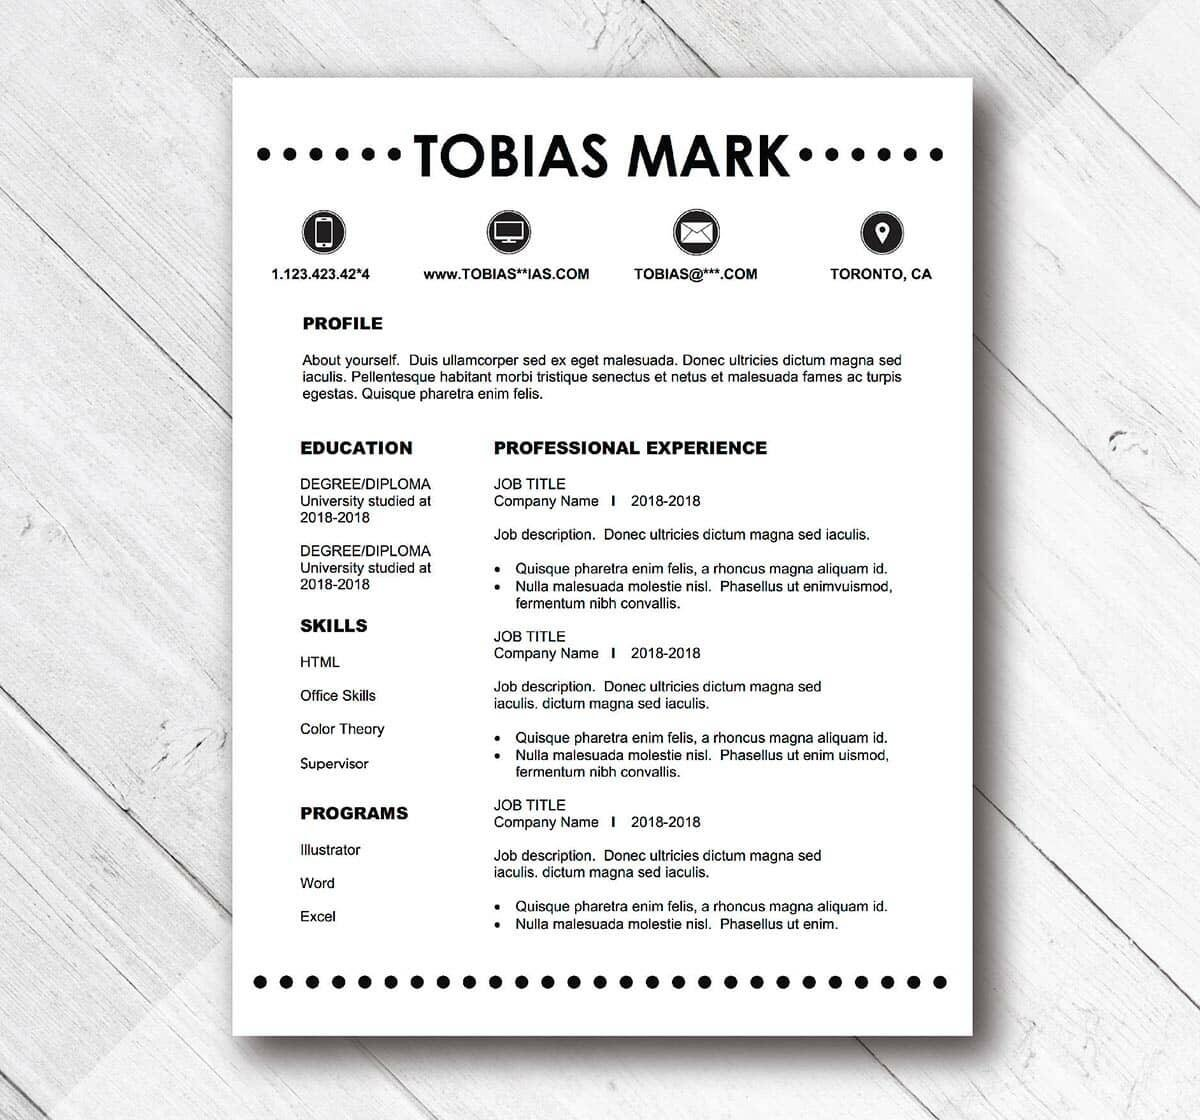 basic and simple resume template examples easy templates sailing example mammography Resume Easy Simple Resume Examples